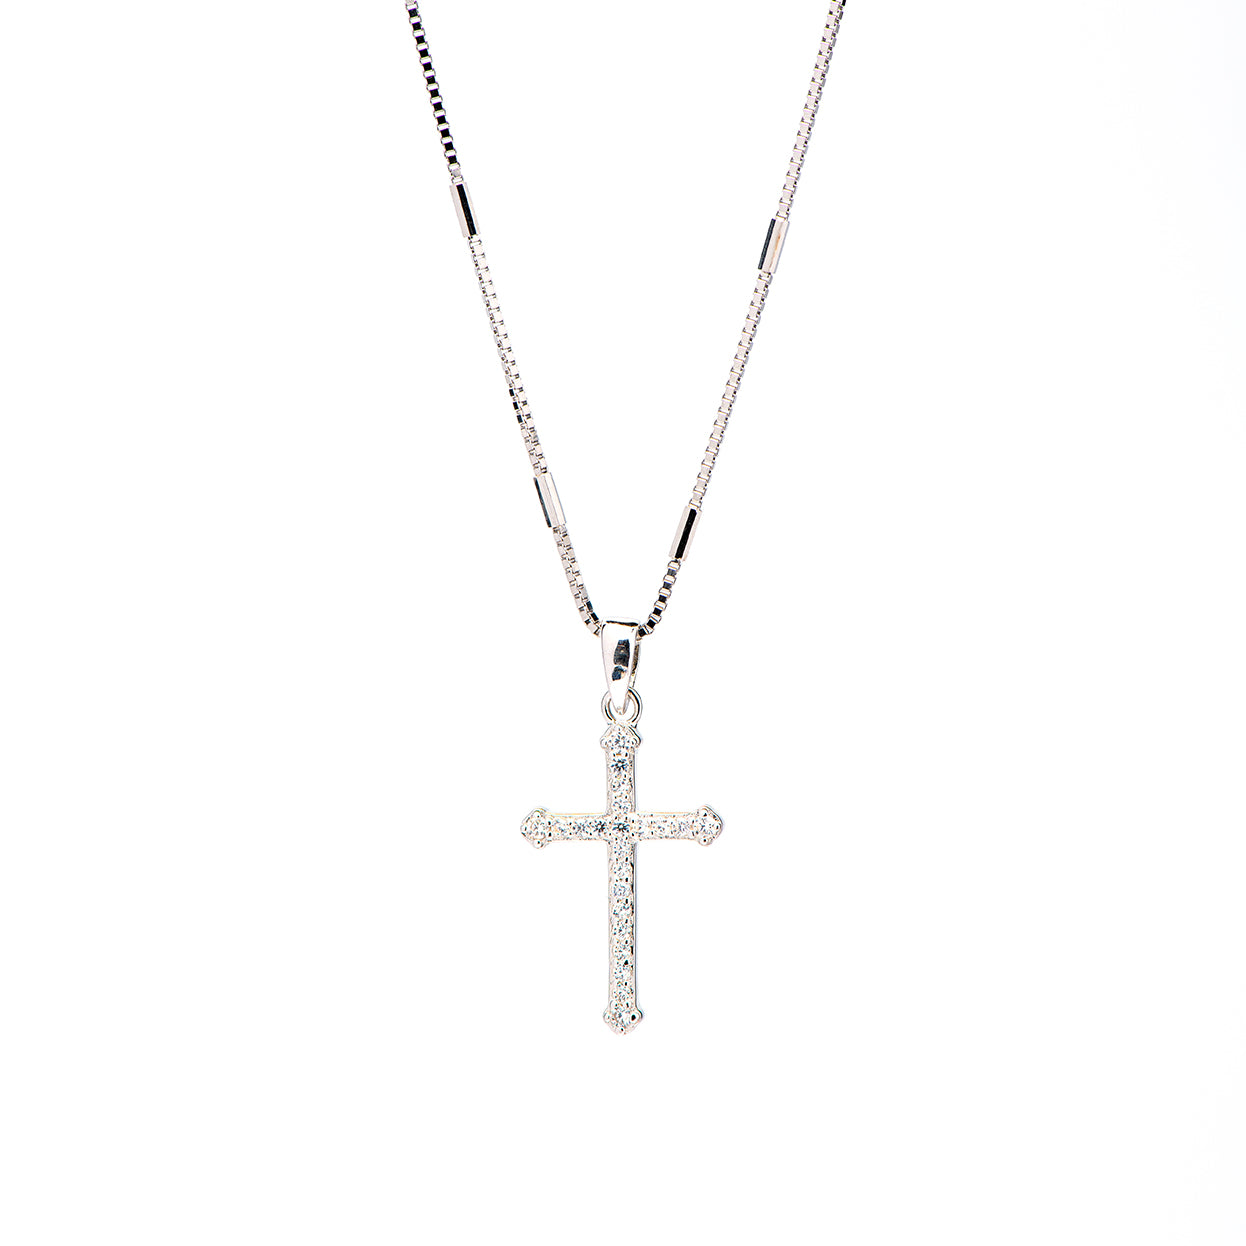 Mariette - Micropave cross necklace